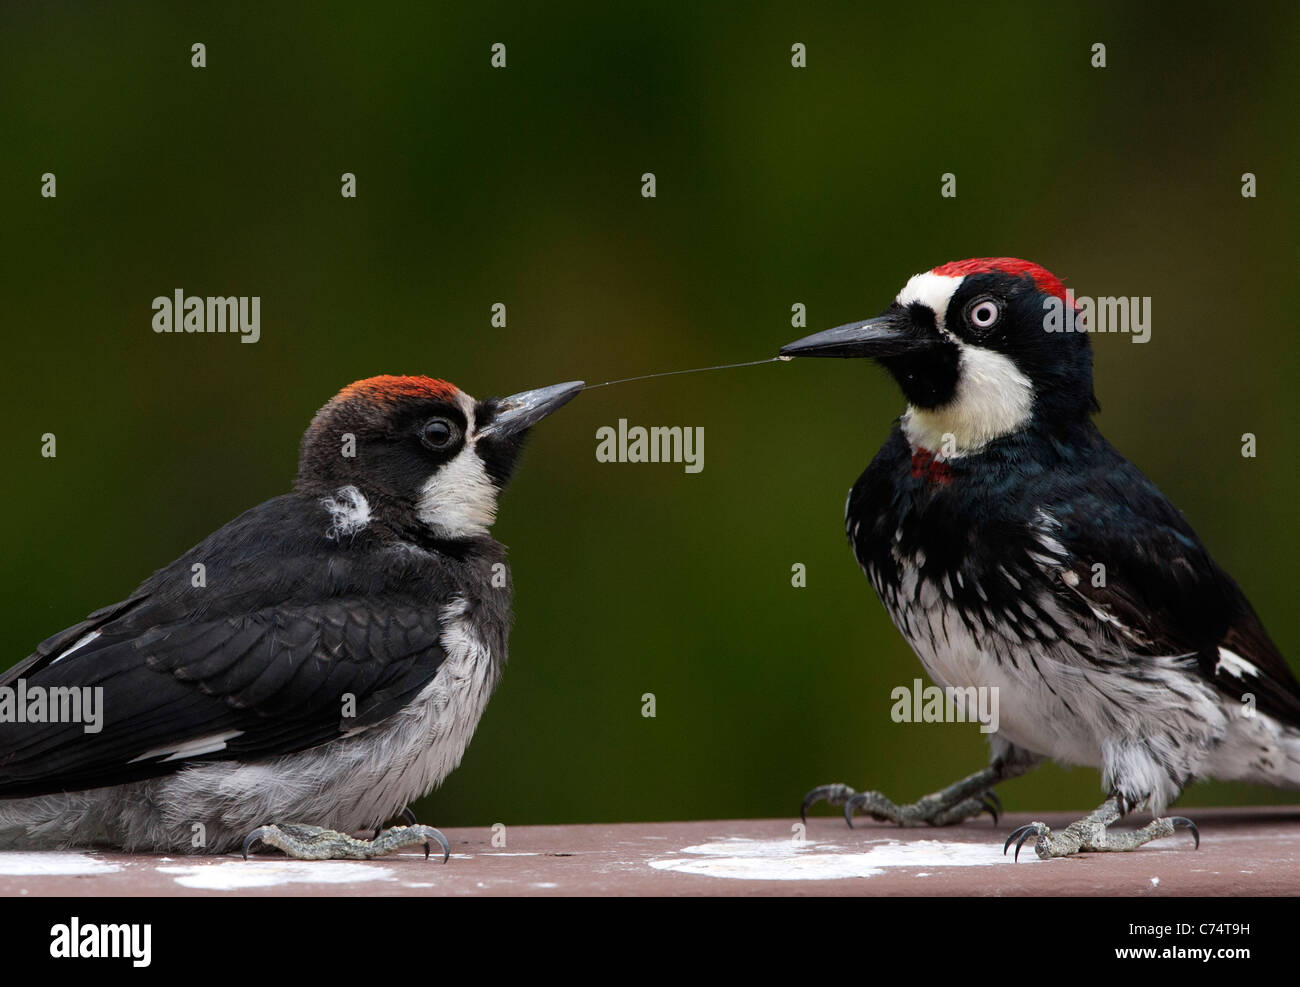 String of Saliva between the beaks of an Adult and an Immature Acorn Woodpecker - Stock Image